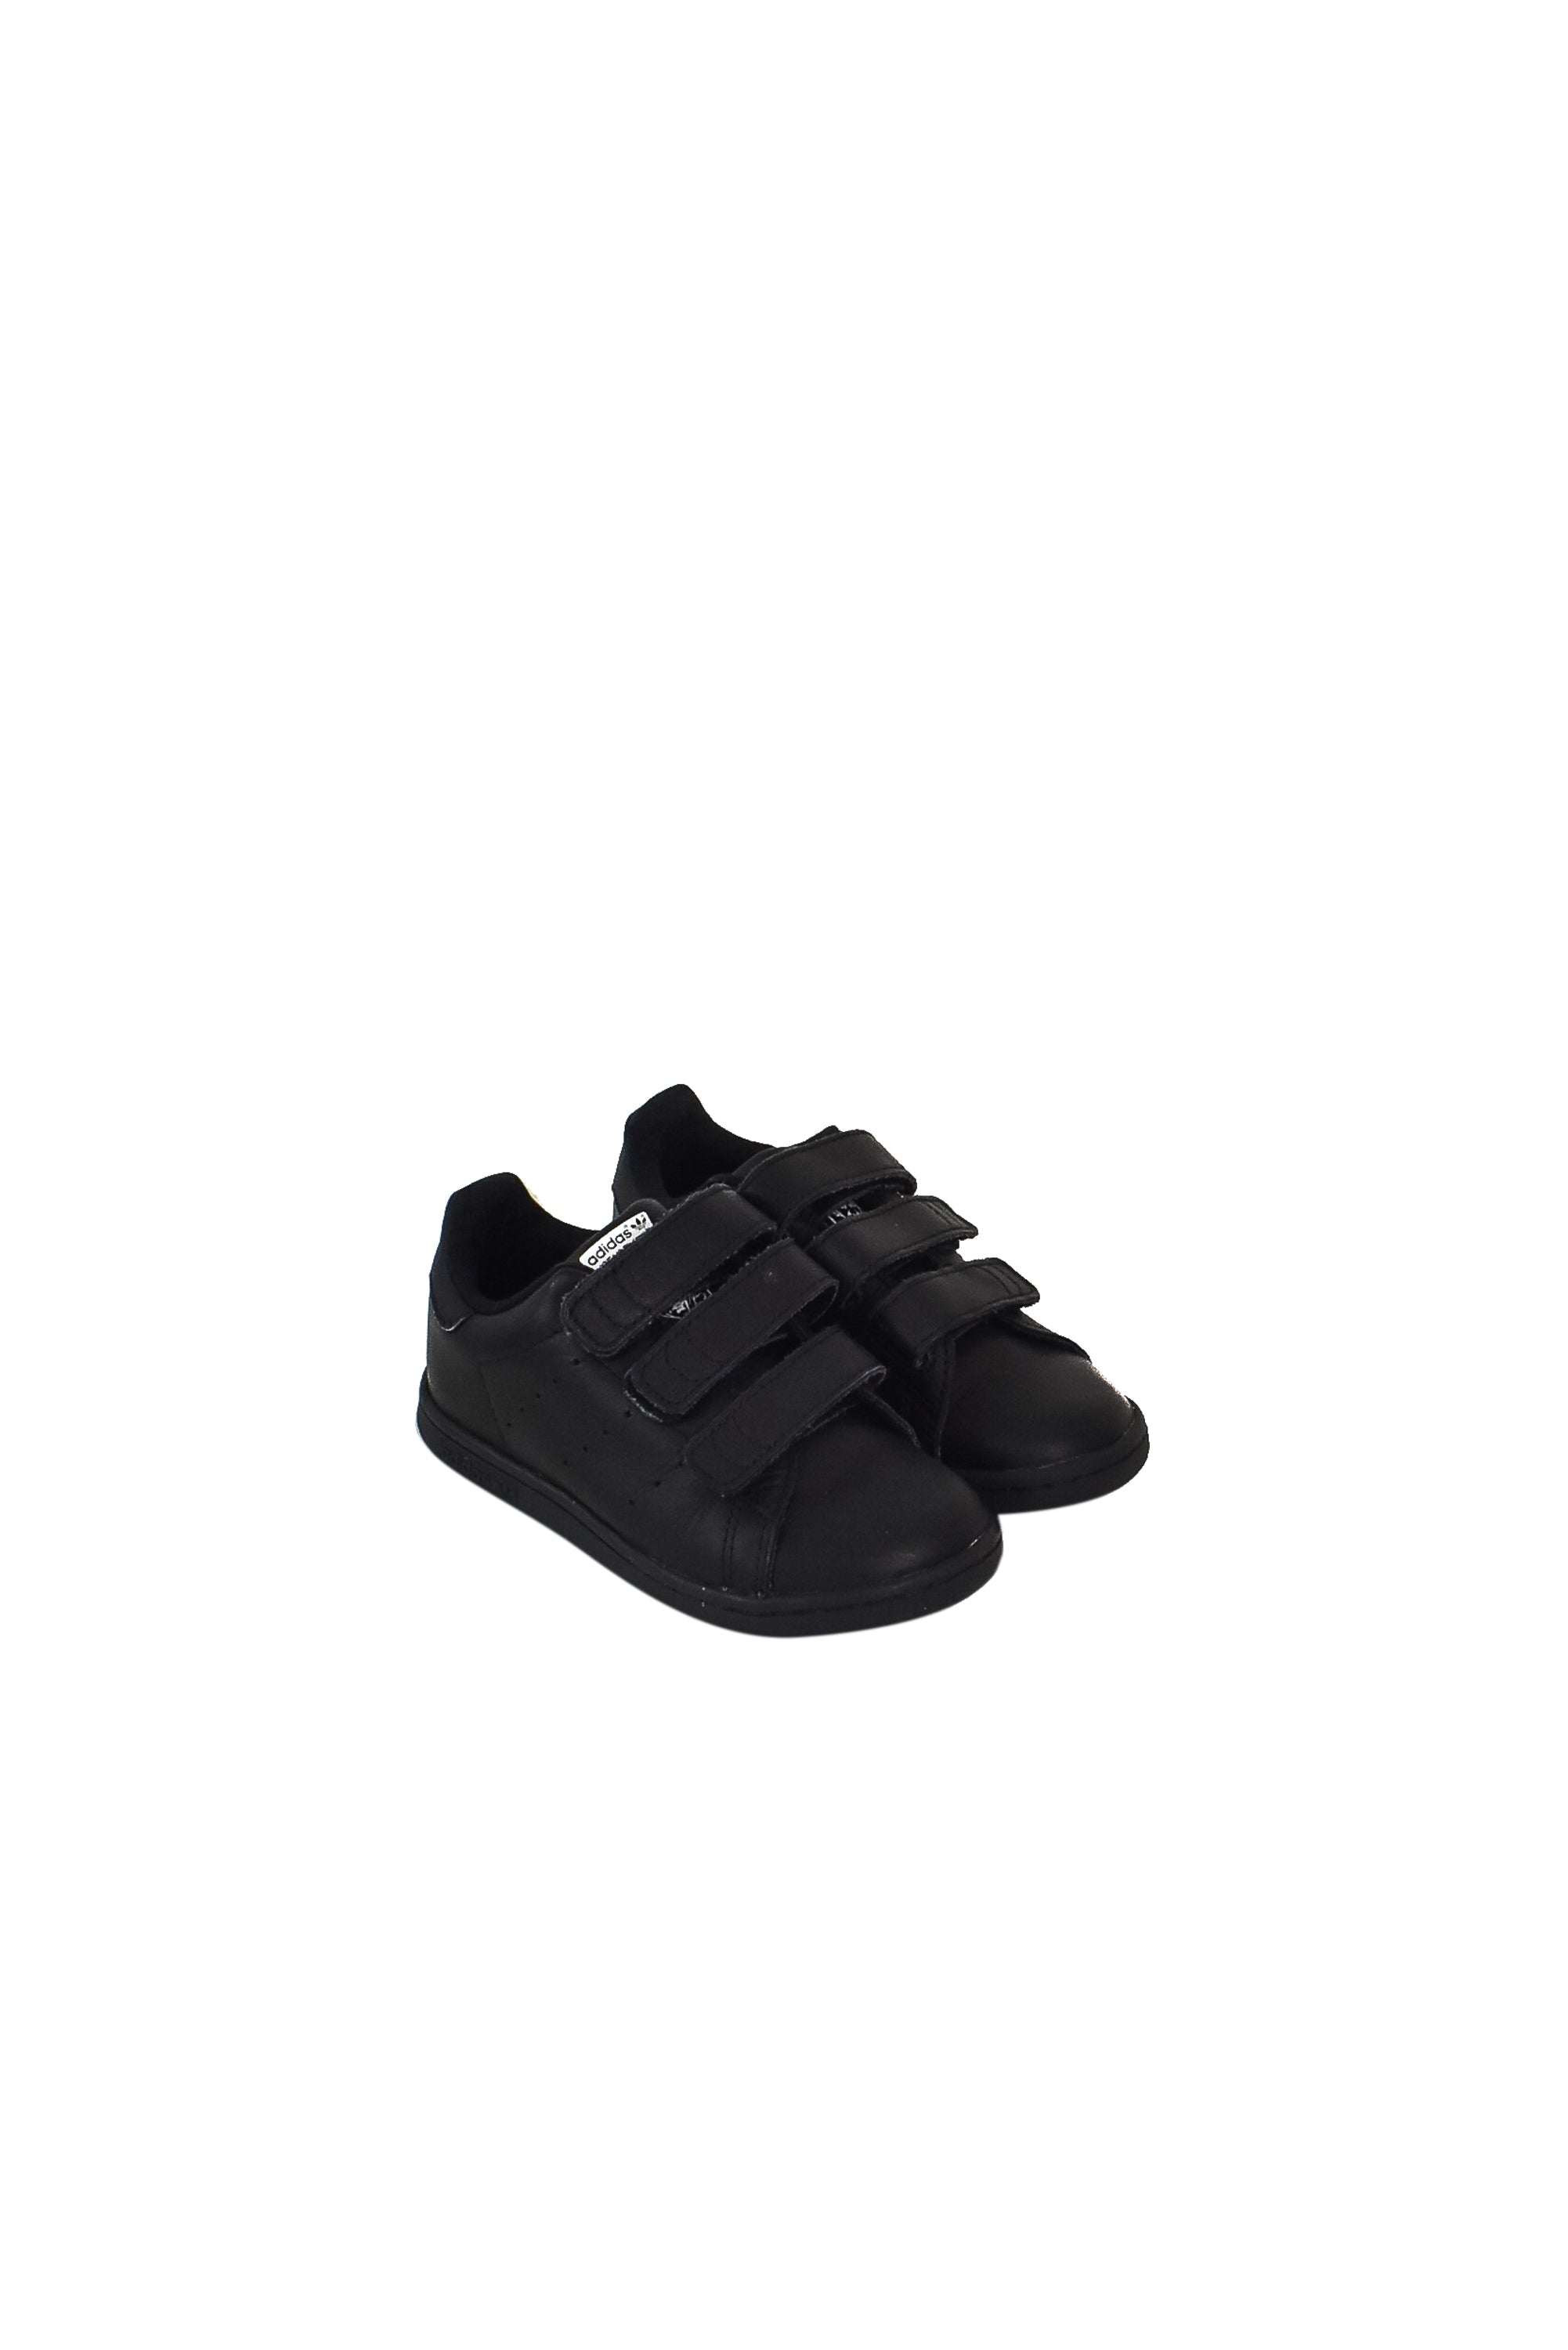 10033580 Adidas Kids~Shoes 4T (EU 26.5) at Retykle